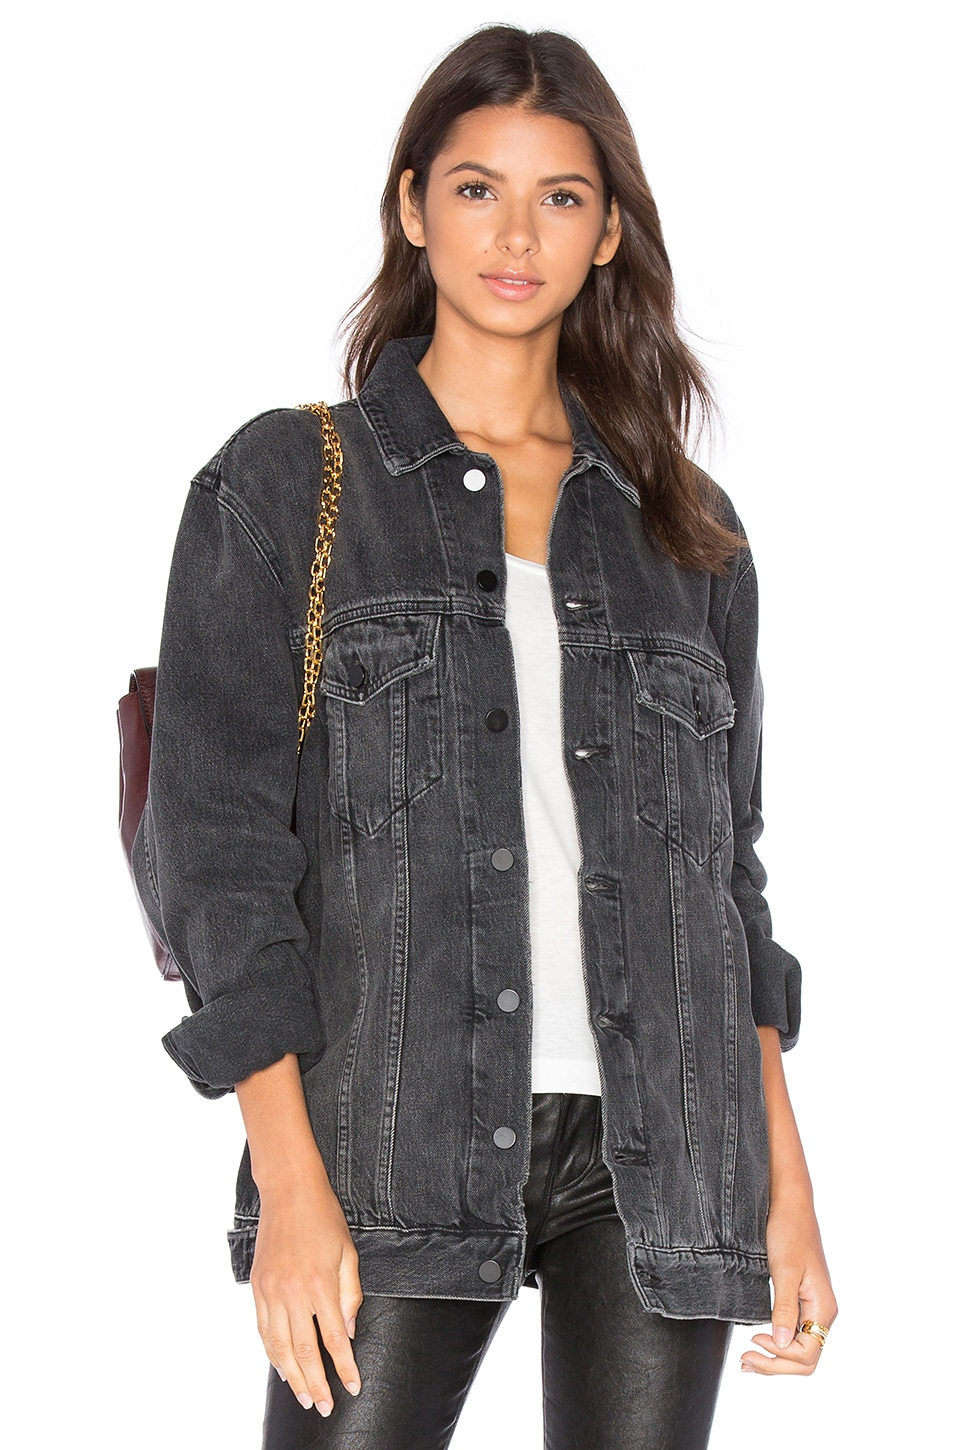 DENIM x ALEXANDER WANG Daze Denim Jacket in Grey Aged